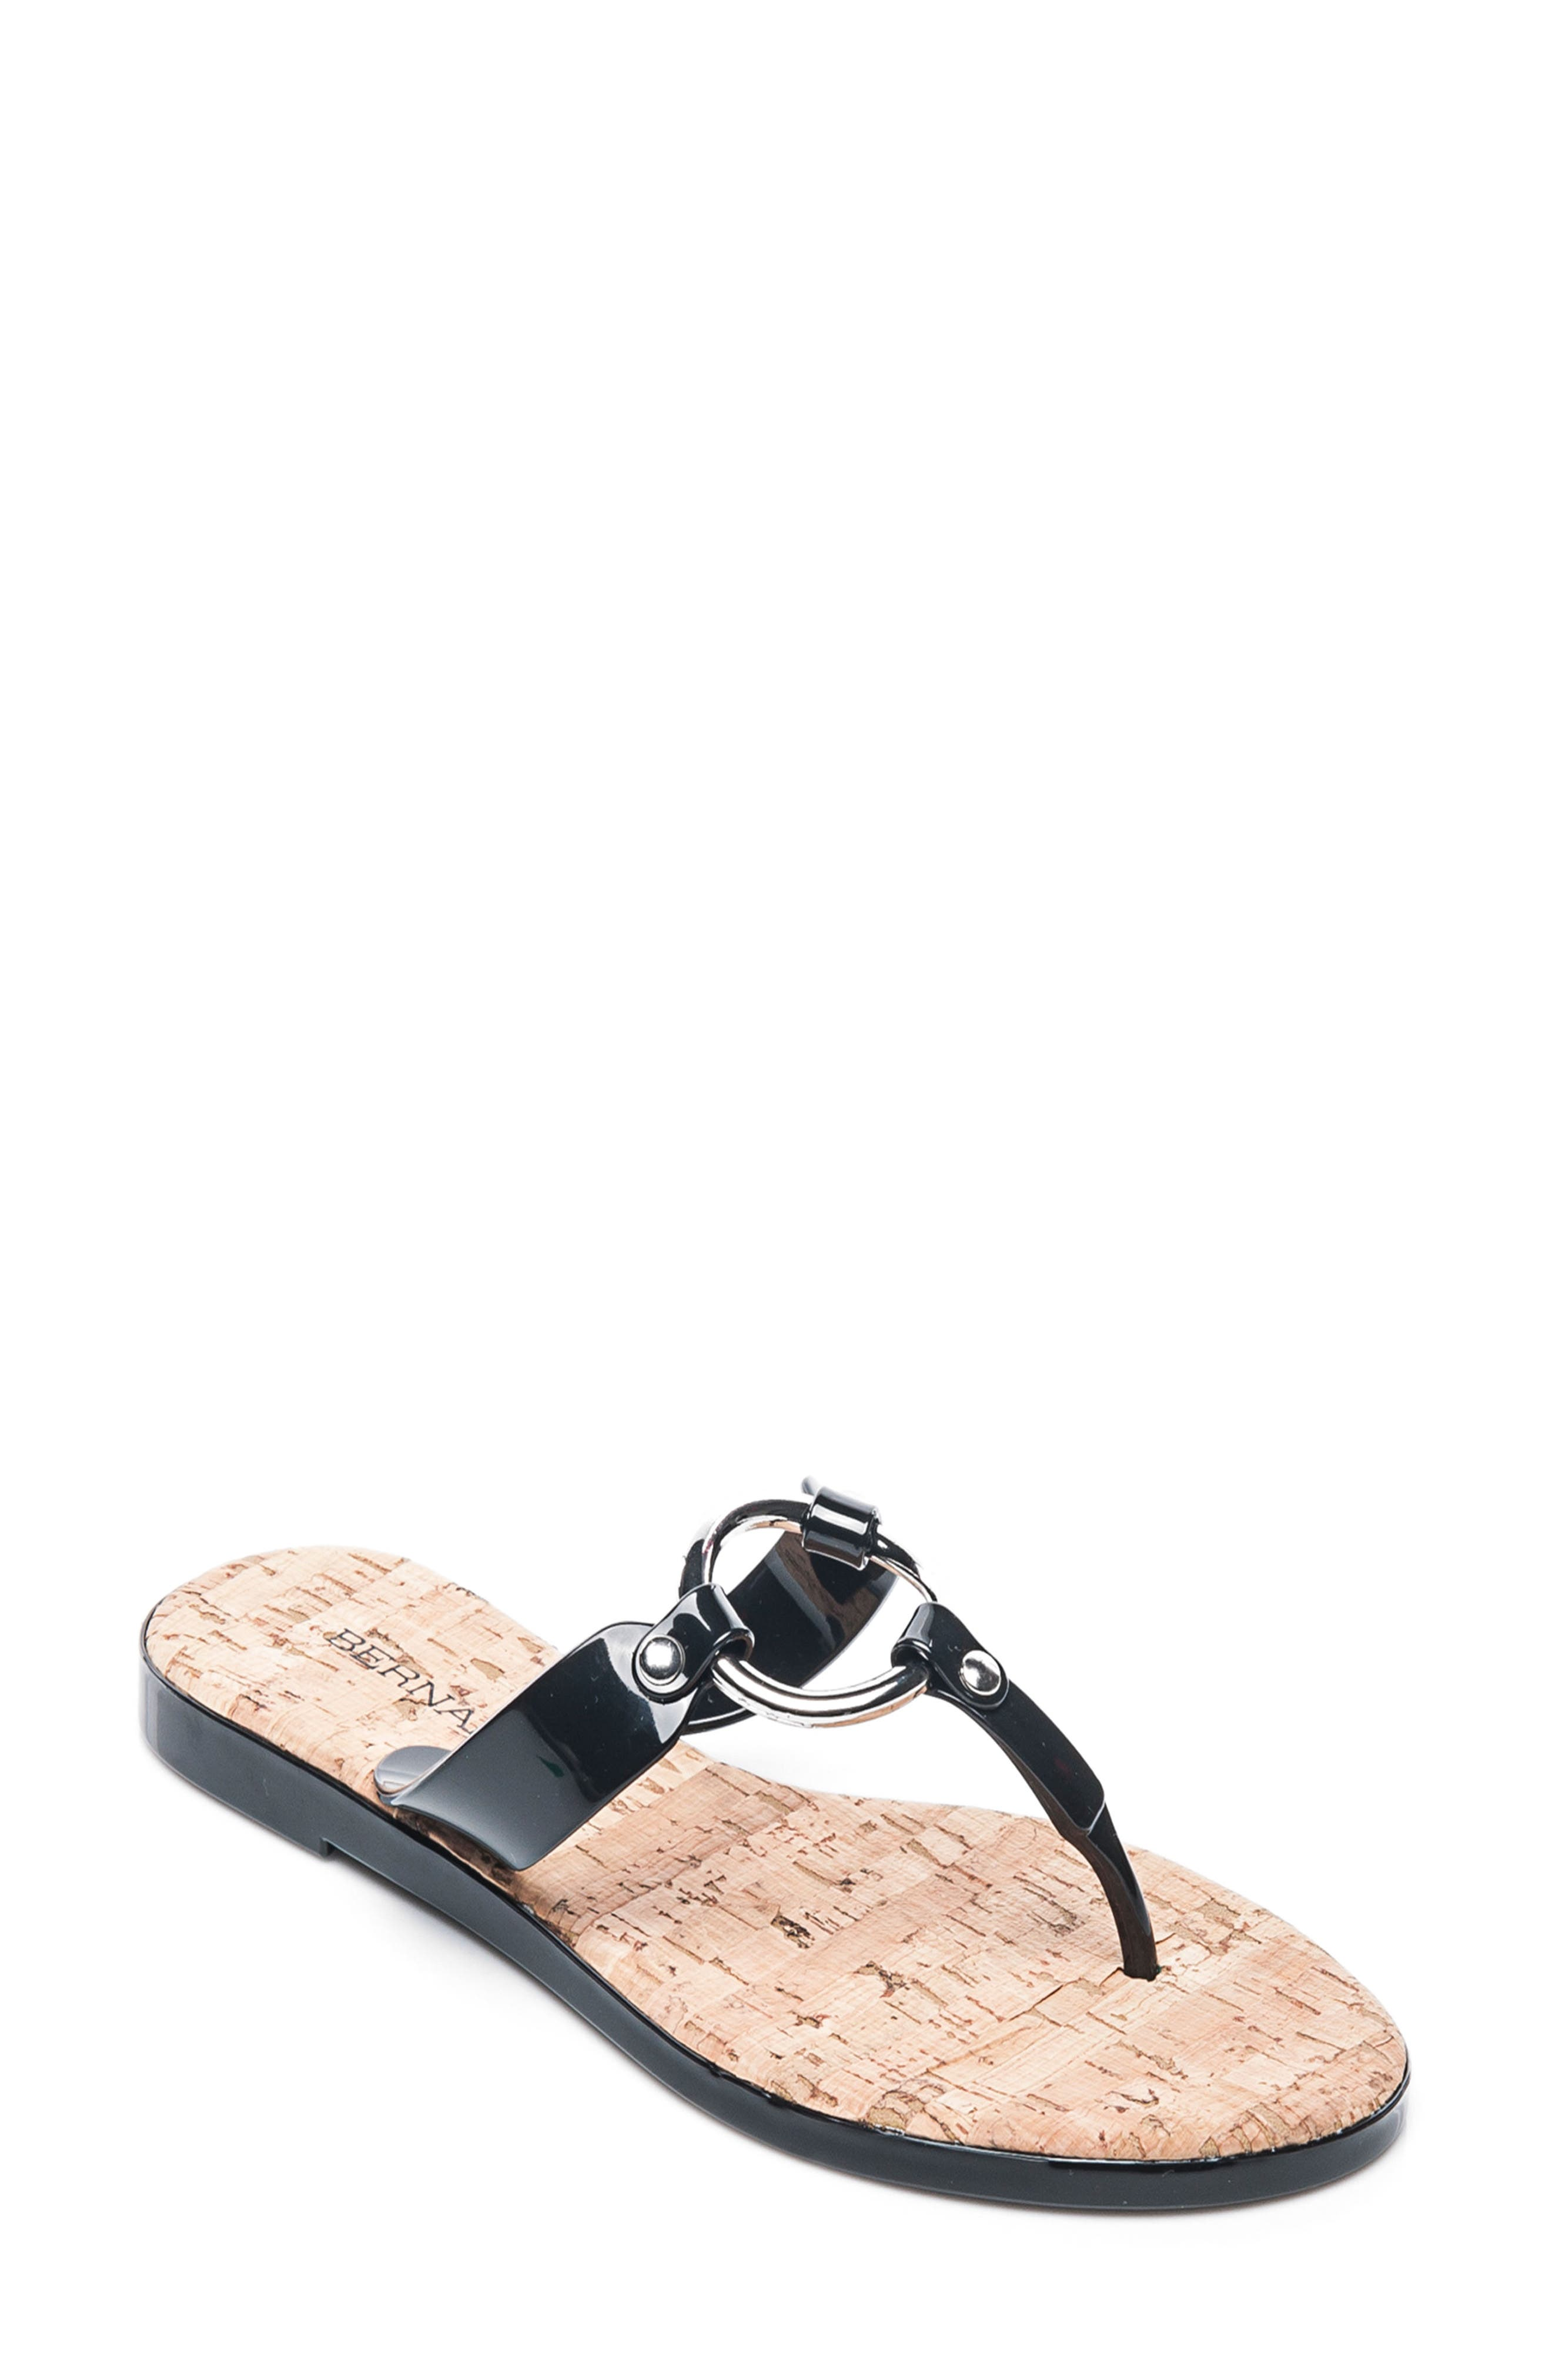 BERNARDO FOOTWEAR Matrix Flip Flop, Main, color, 001